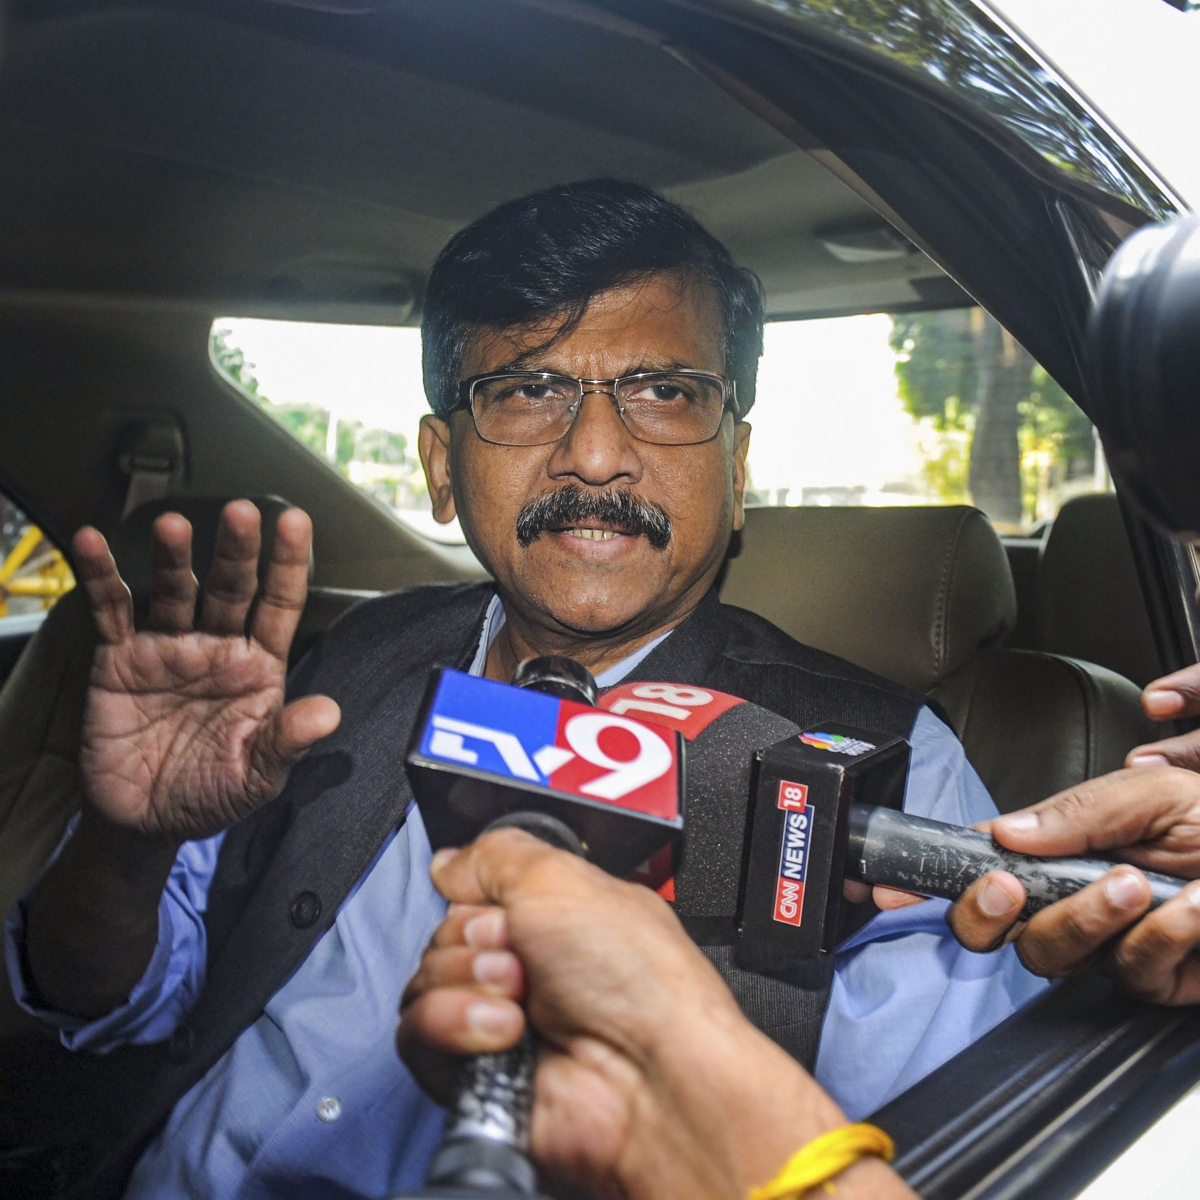 Sanjay Raut says Centre should impose President's rule in Gujarat as it is worse in handling COVID-19 crisis